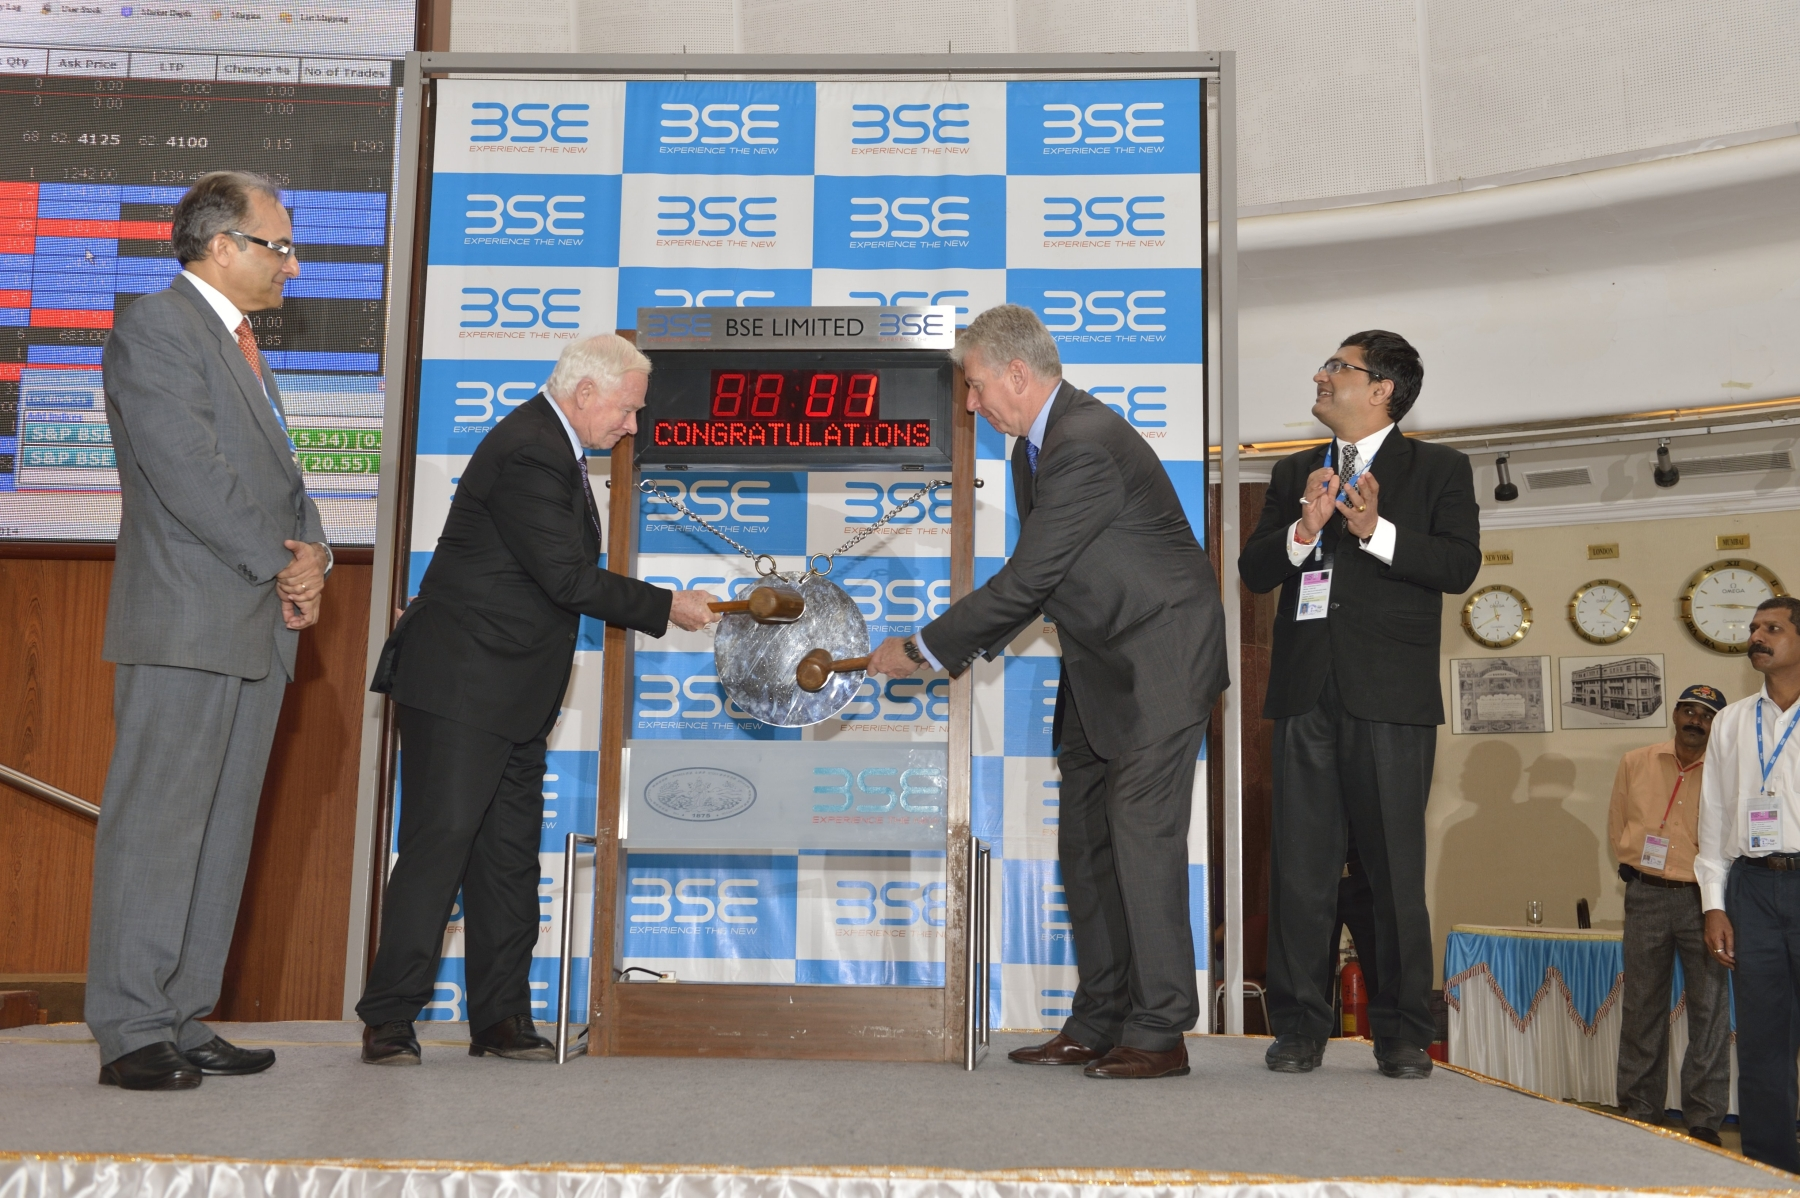 At 9:15 a.m., His Excellency and Canadian High Commissioner Stewart Beck (right) officially opened the stock market at the Bombay Stock Exchange (BSE) by hitting a gong.